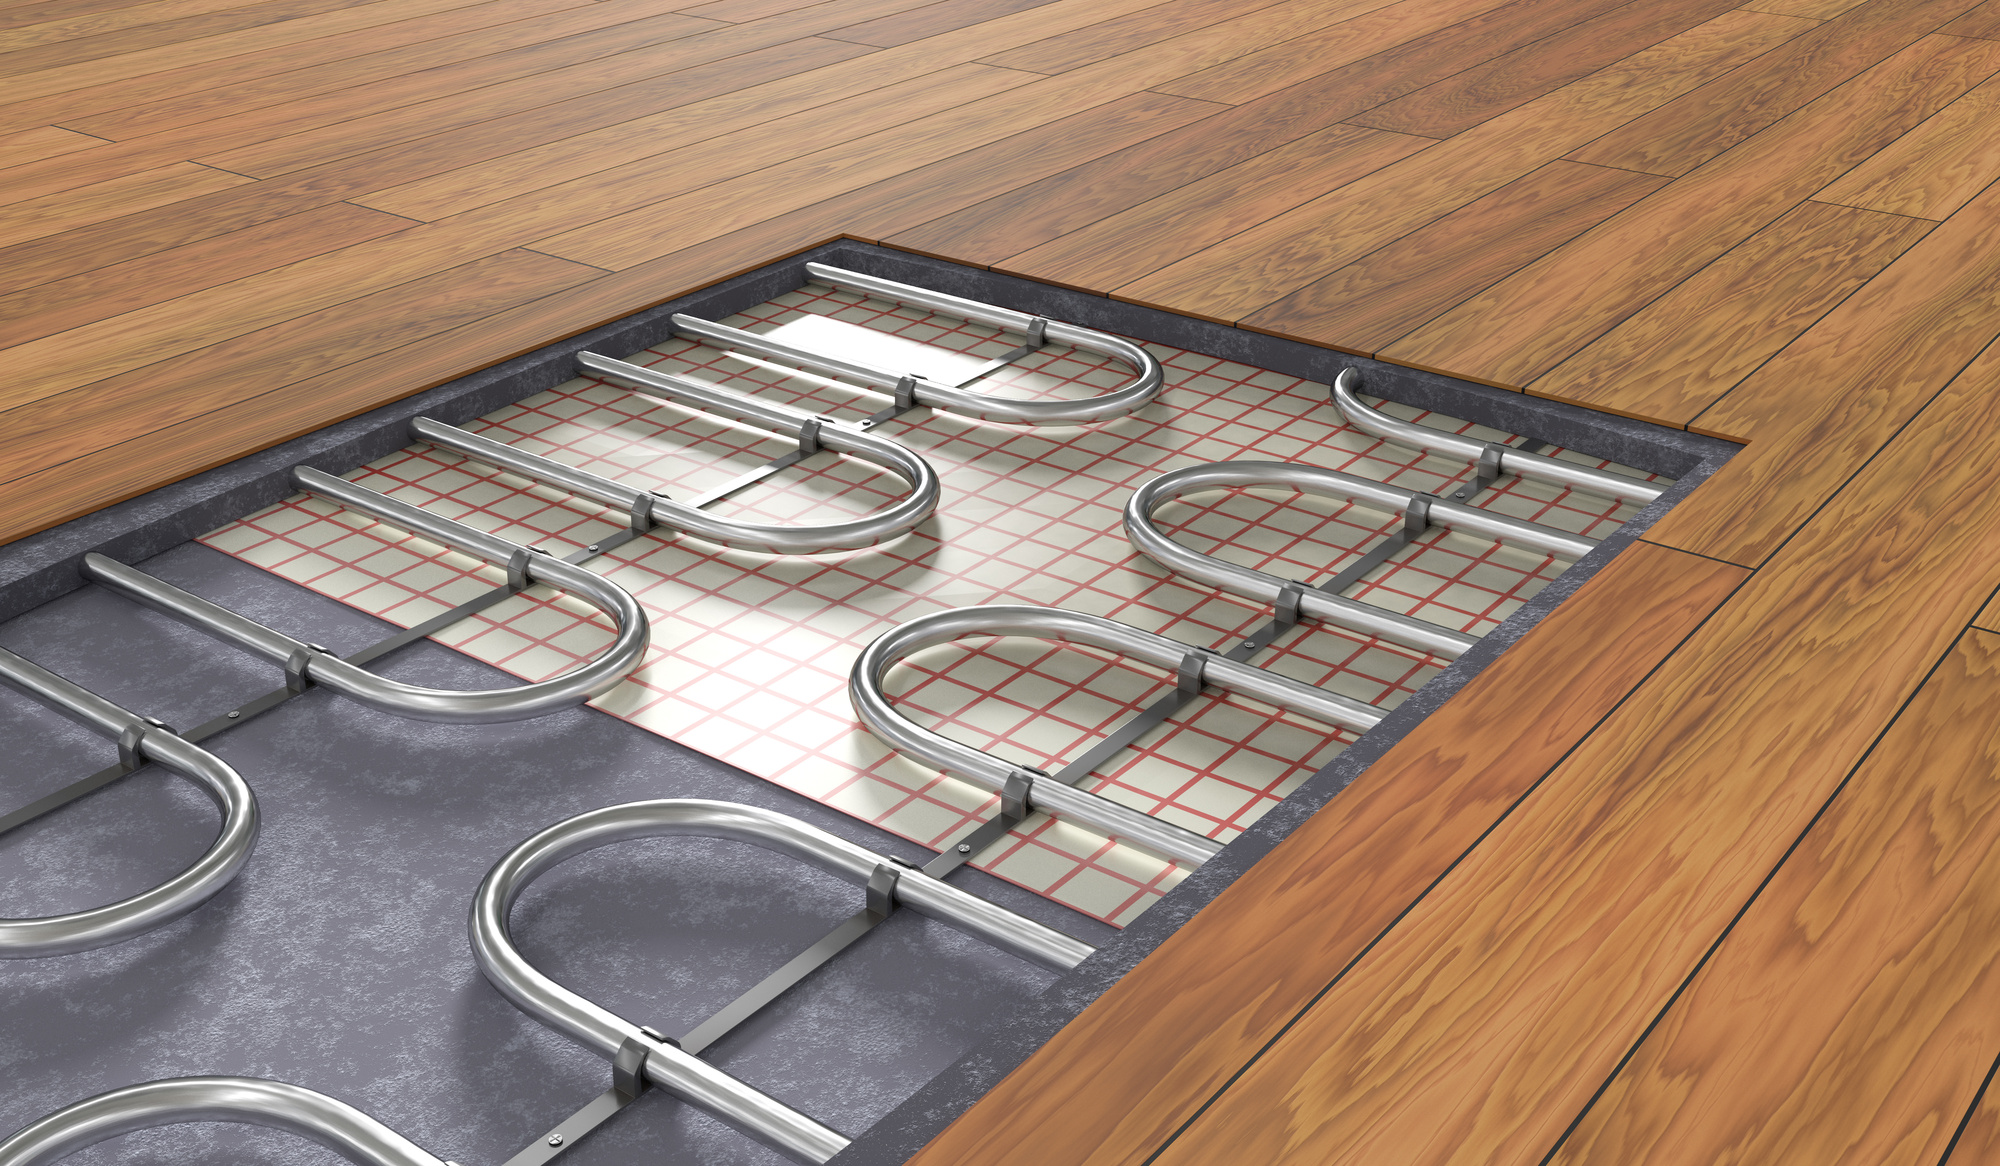 7 Key Benefits Of Floor Heating Systems In Your Home